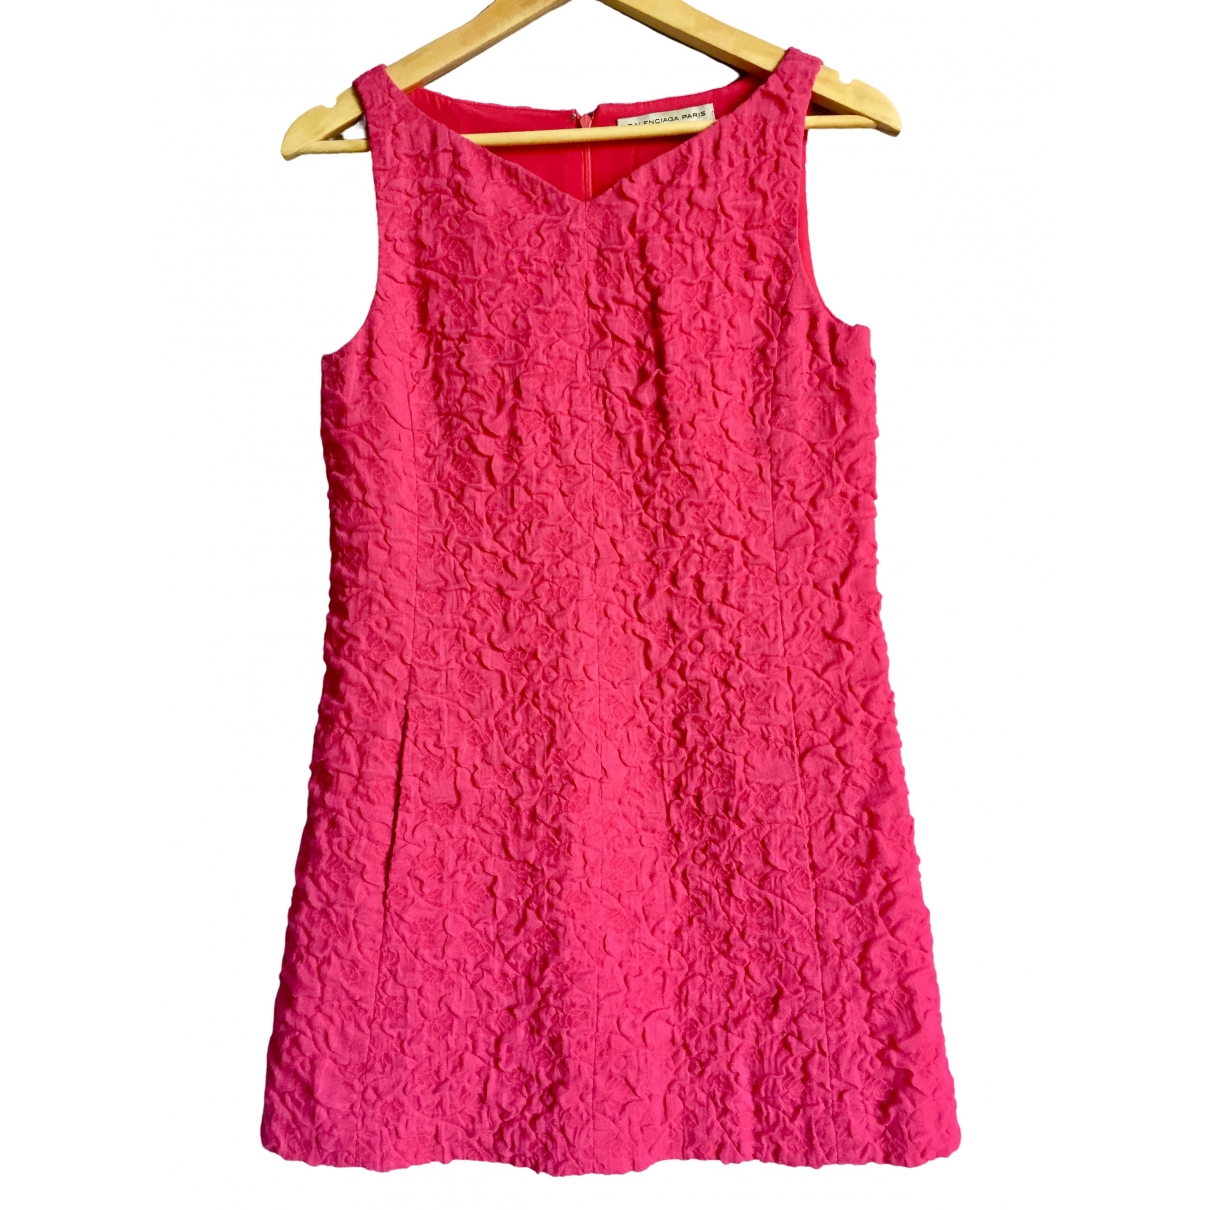 Balenciaga \N Pink Cotton dress for Women 36 IT